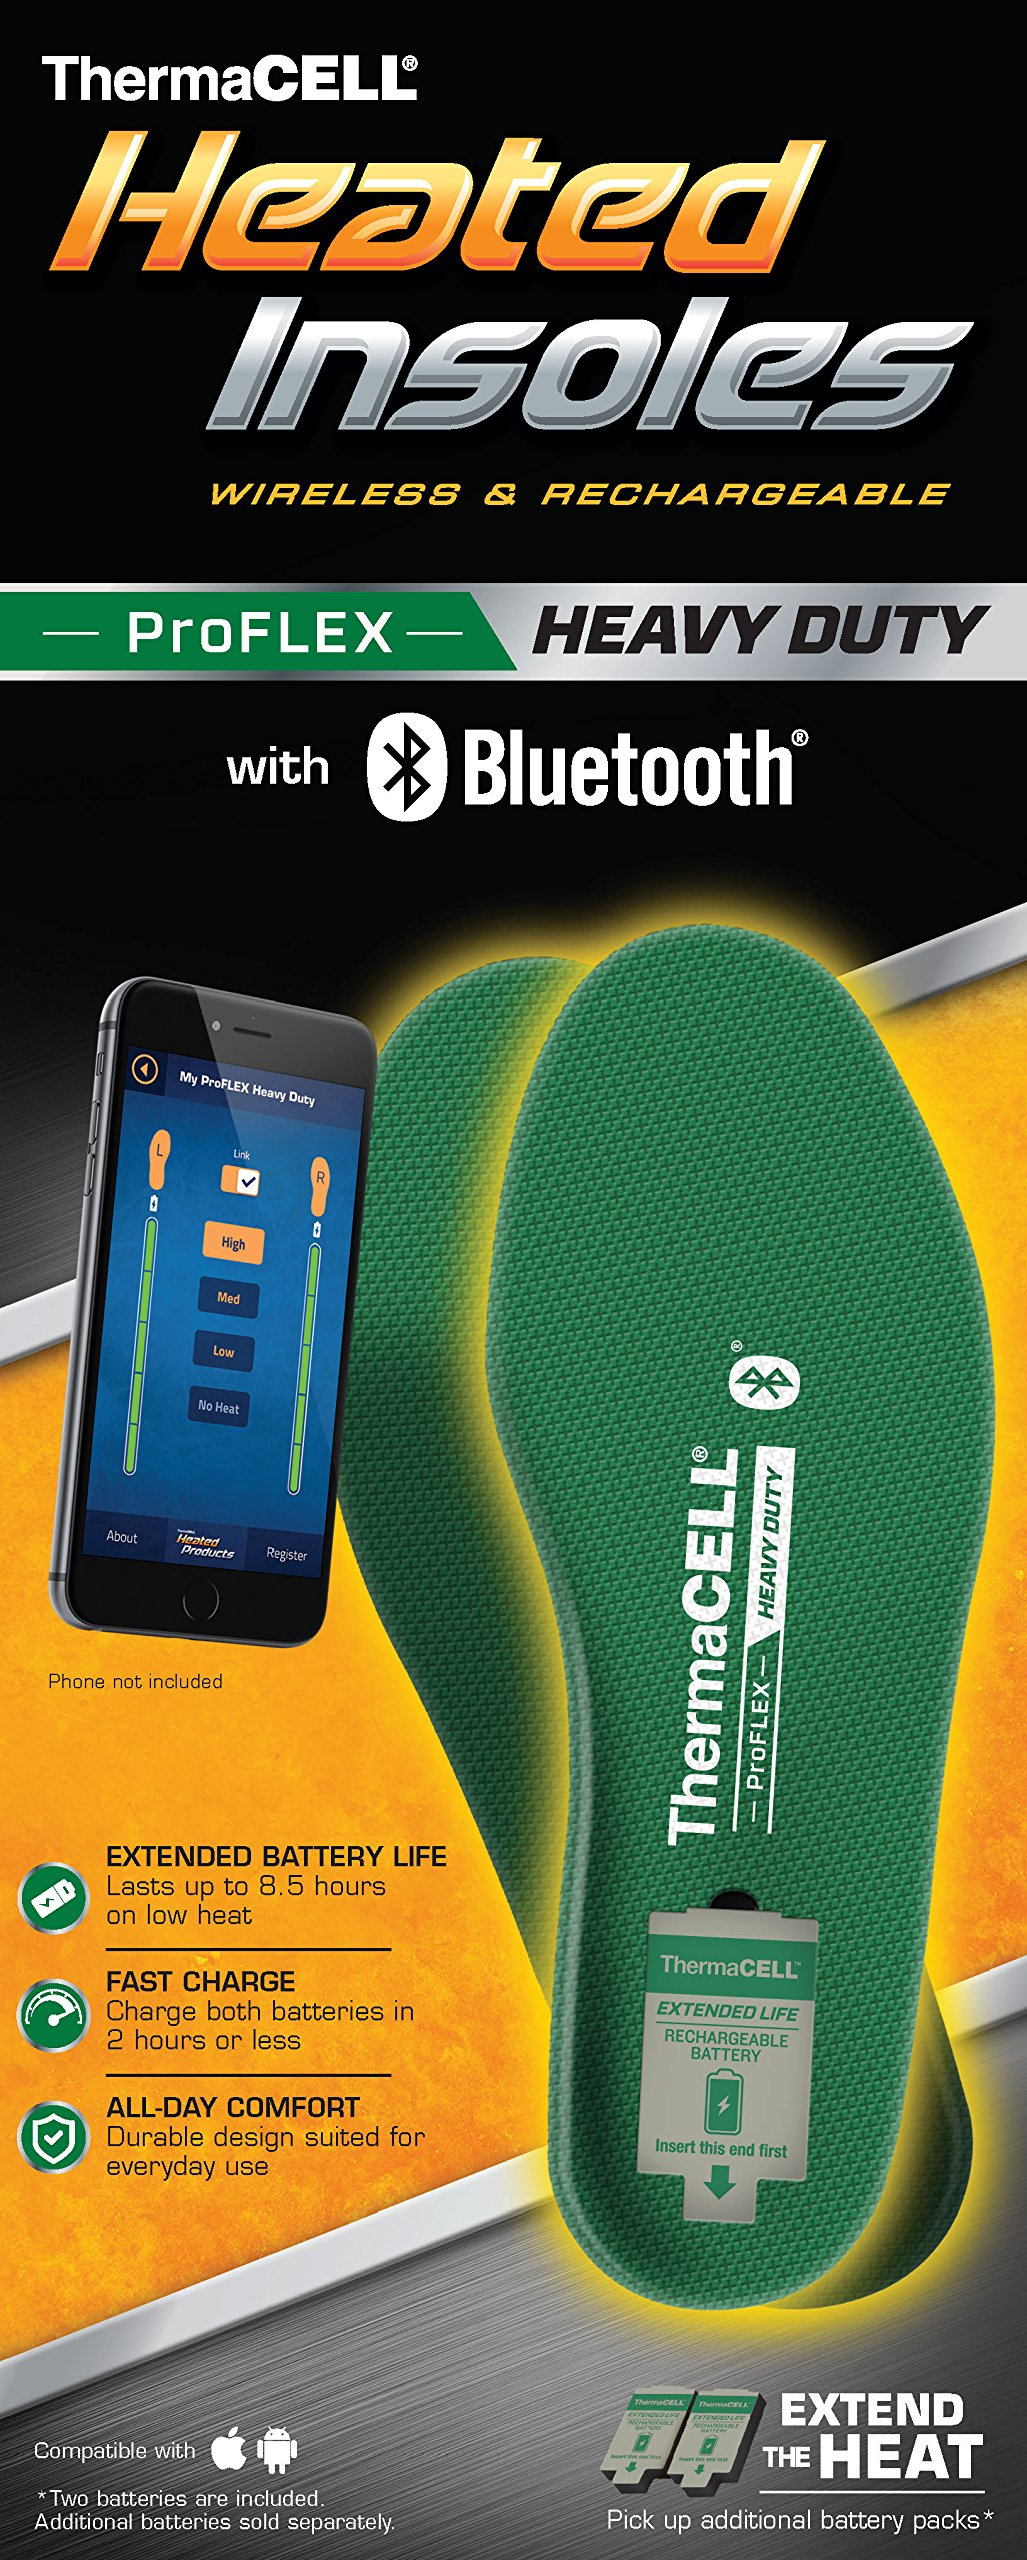 ThermaCELL Proflex Heavy Duty Heated Shoe Insoles with Bluetooth Compatibility, XL by Thermacell (Image #3)